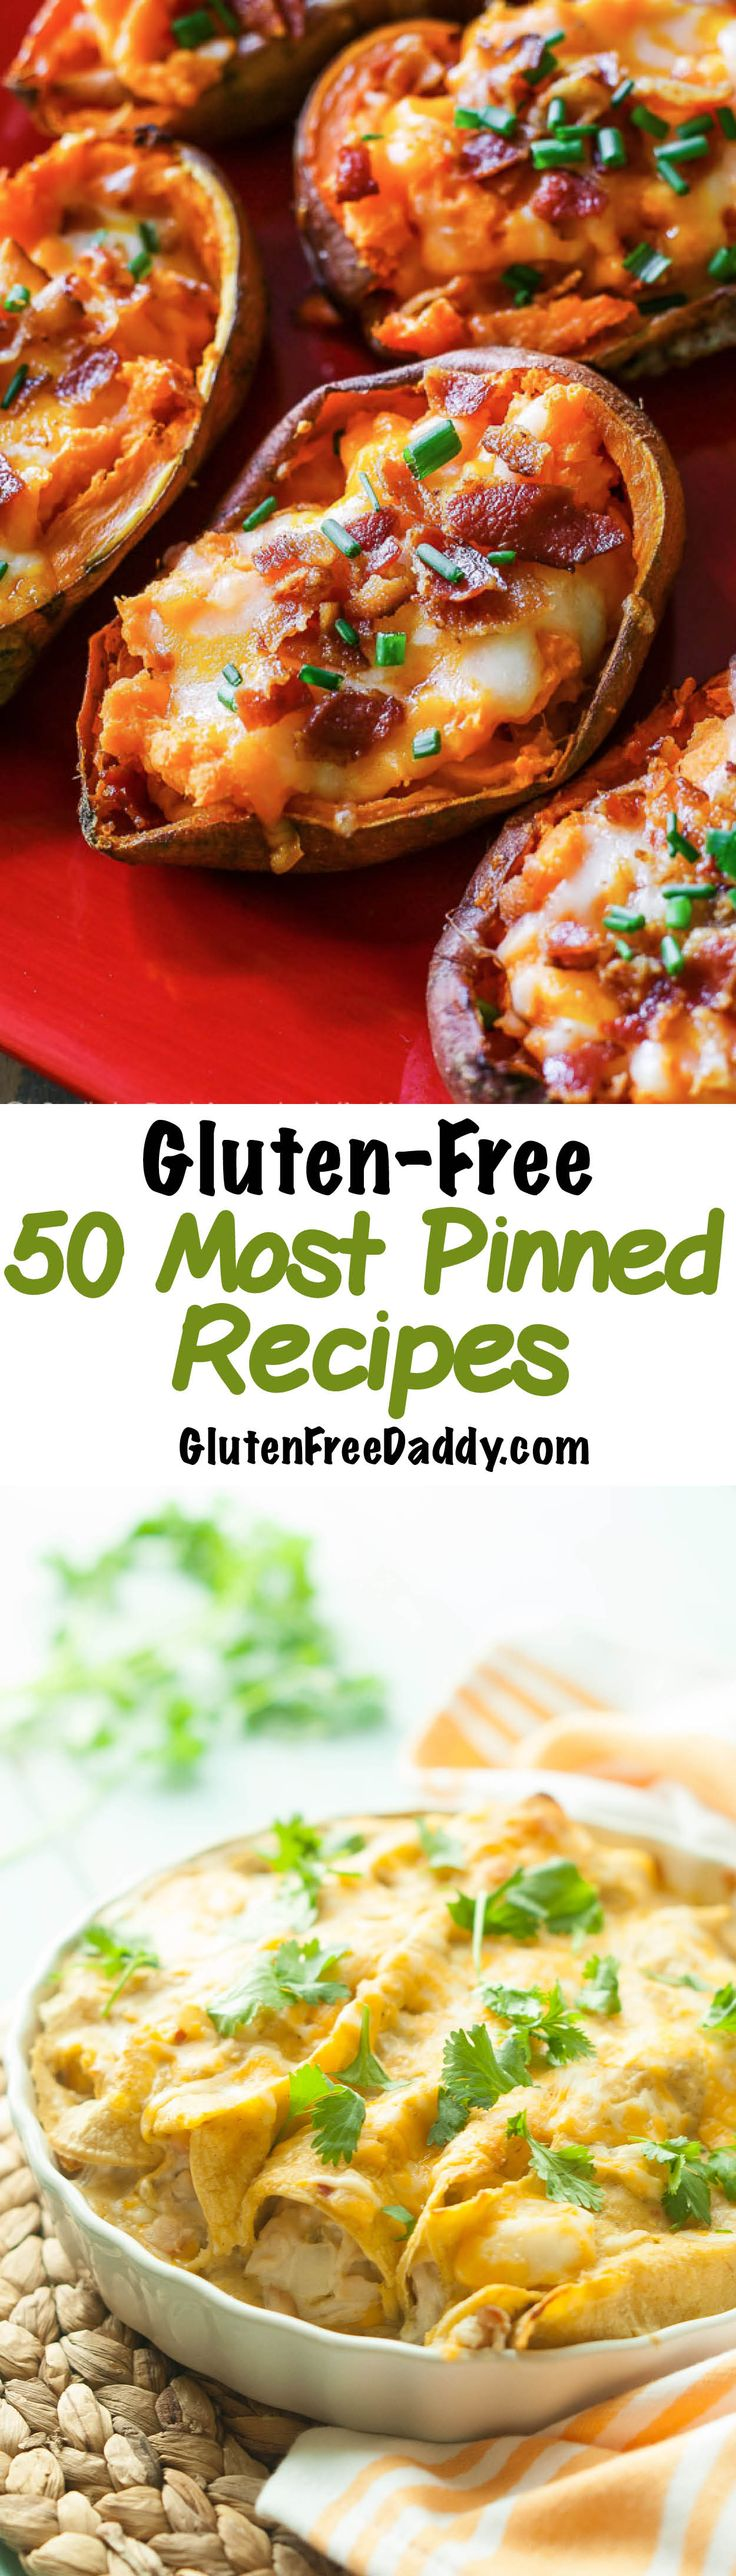 The 50 Most Pinned Gluten Free Recipes - I can't believe these are all gluten free! There are so many good options on this page - and you know if they have been pinned at least 50,000 times then they must be good.